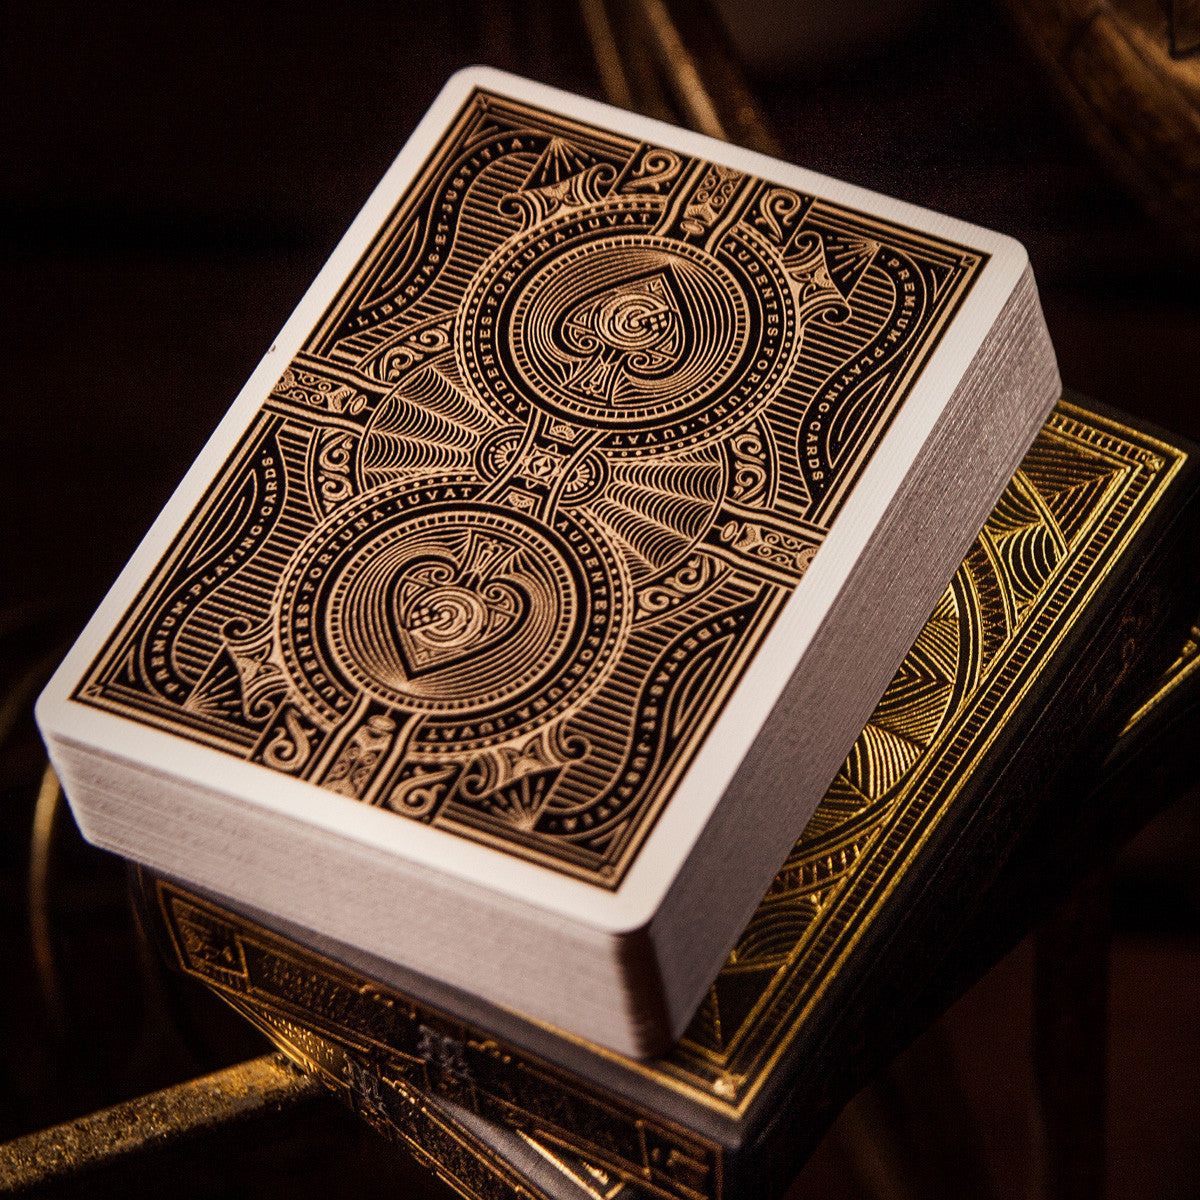 CITIZENS playing cards deck - MR CUP